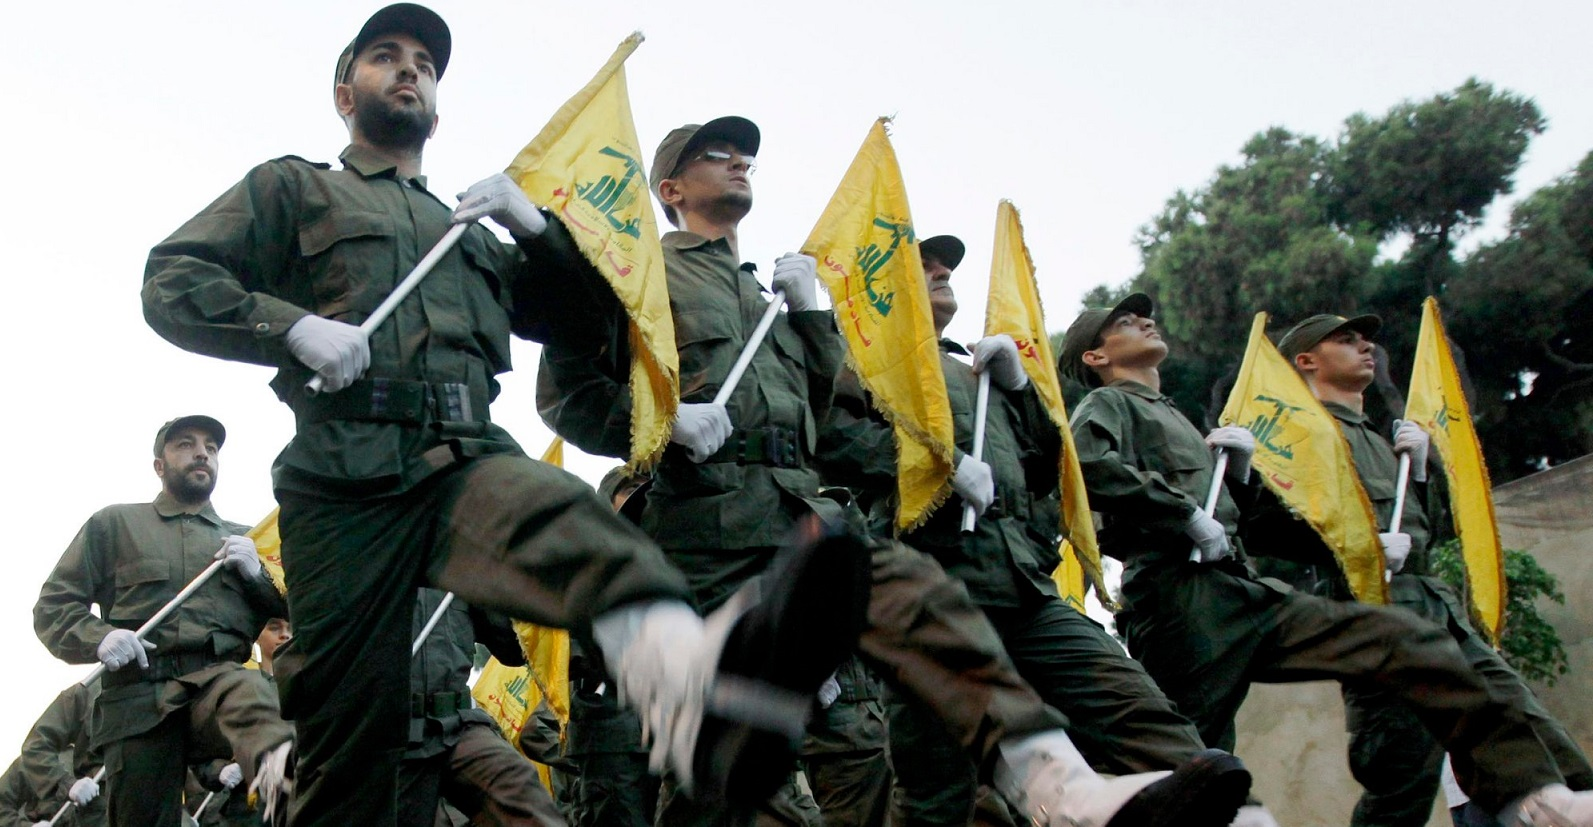 Hezbollah fighters marching in Lebanon.